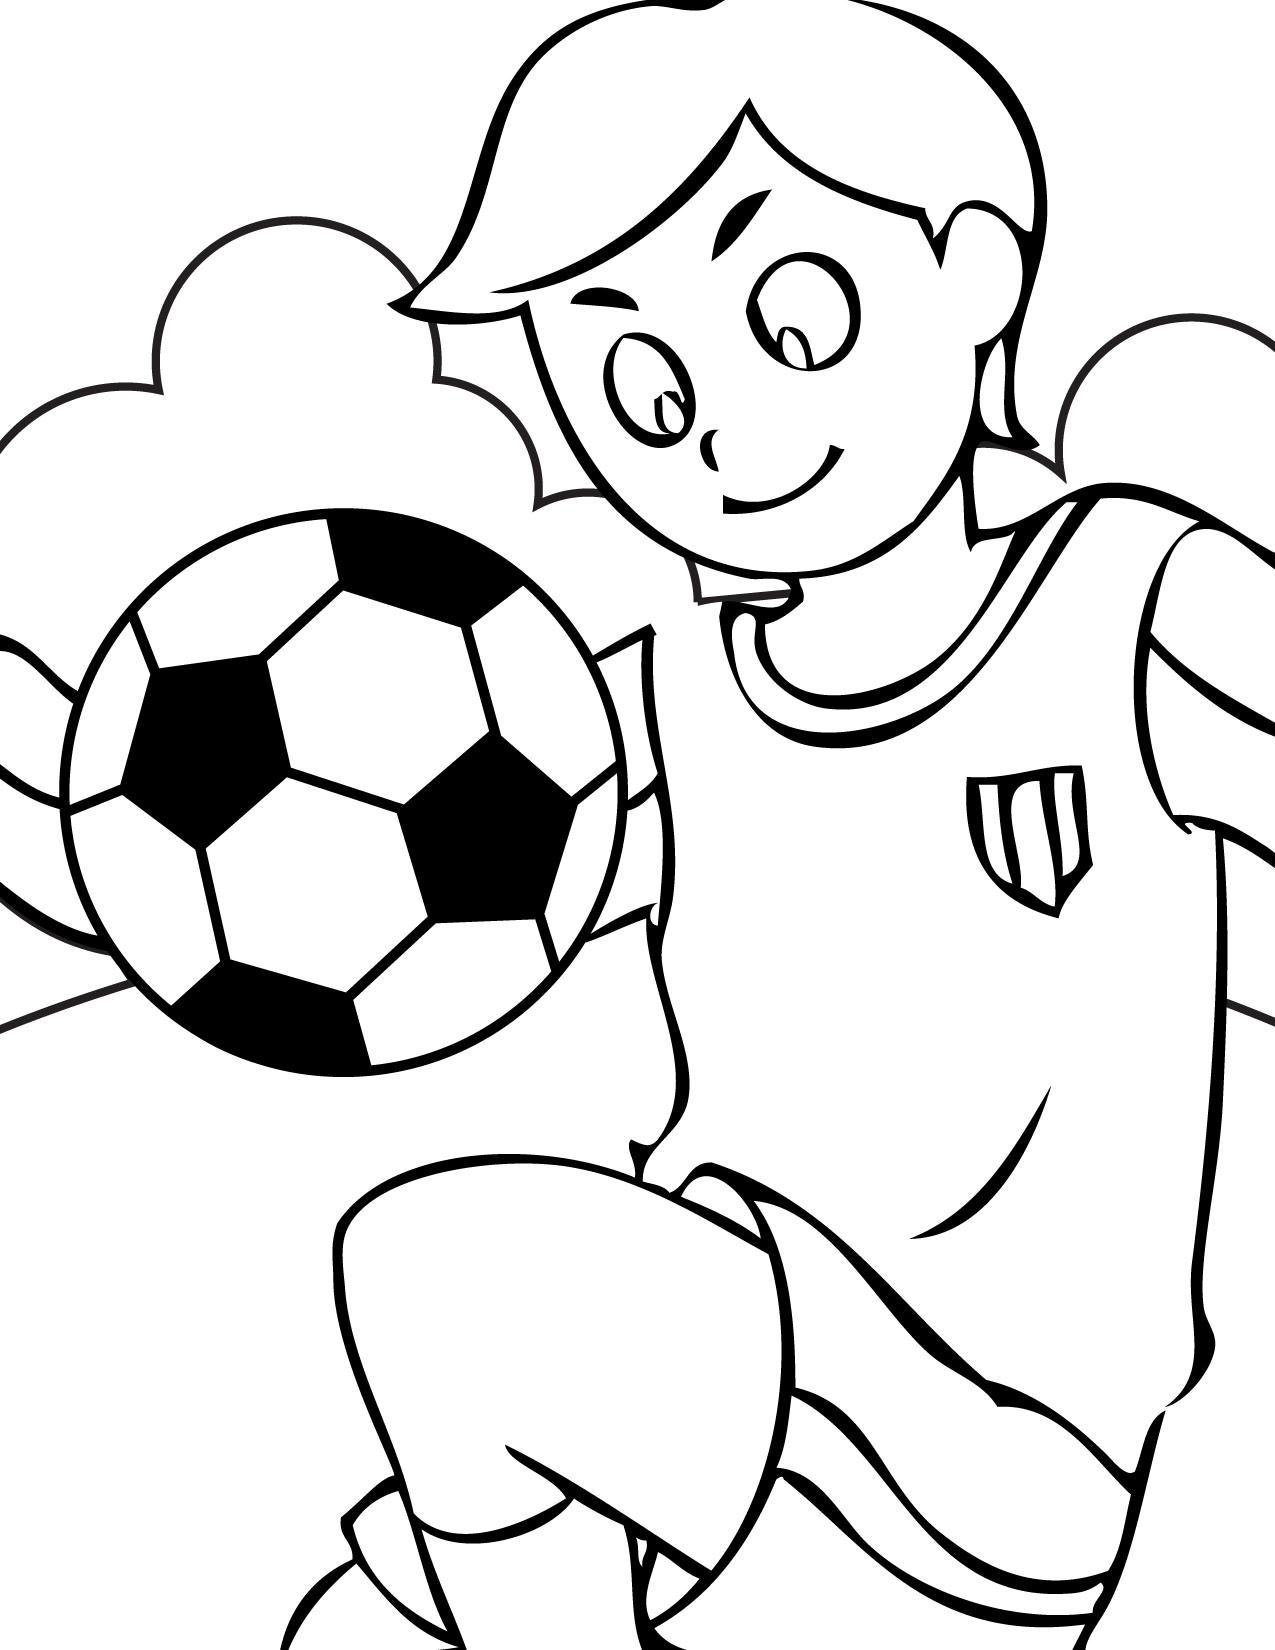 Free printable soccer coloring pages for kids Coloring pages book for kids girls